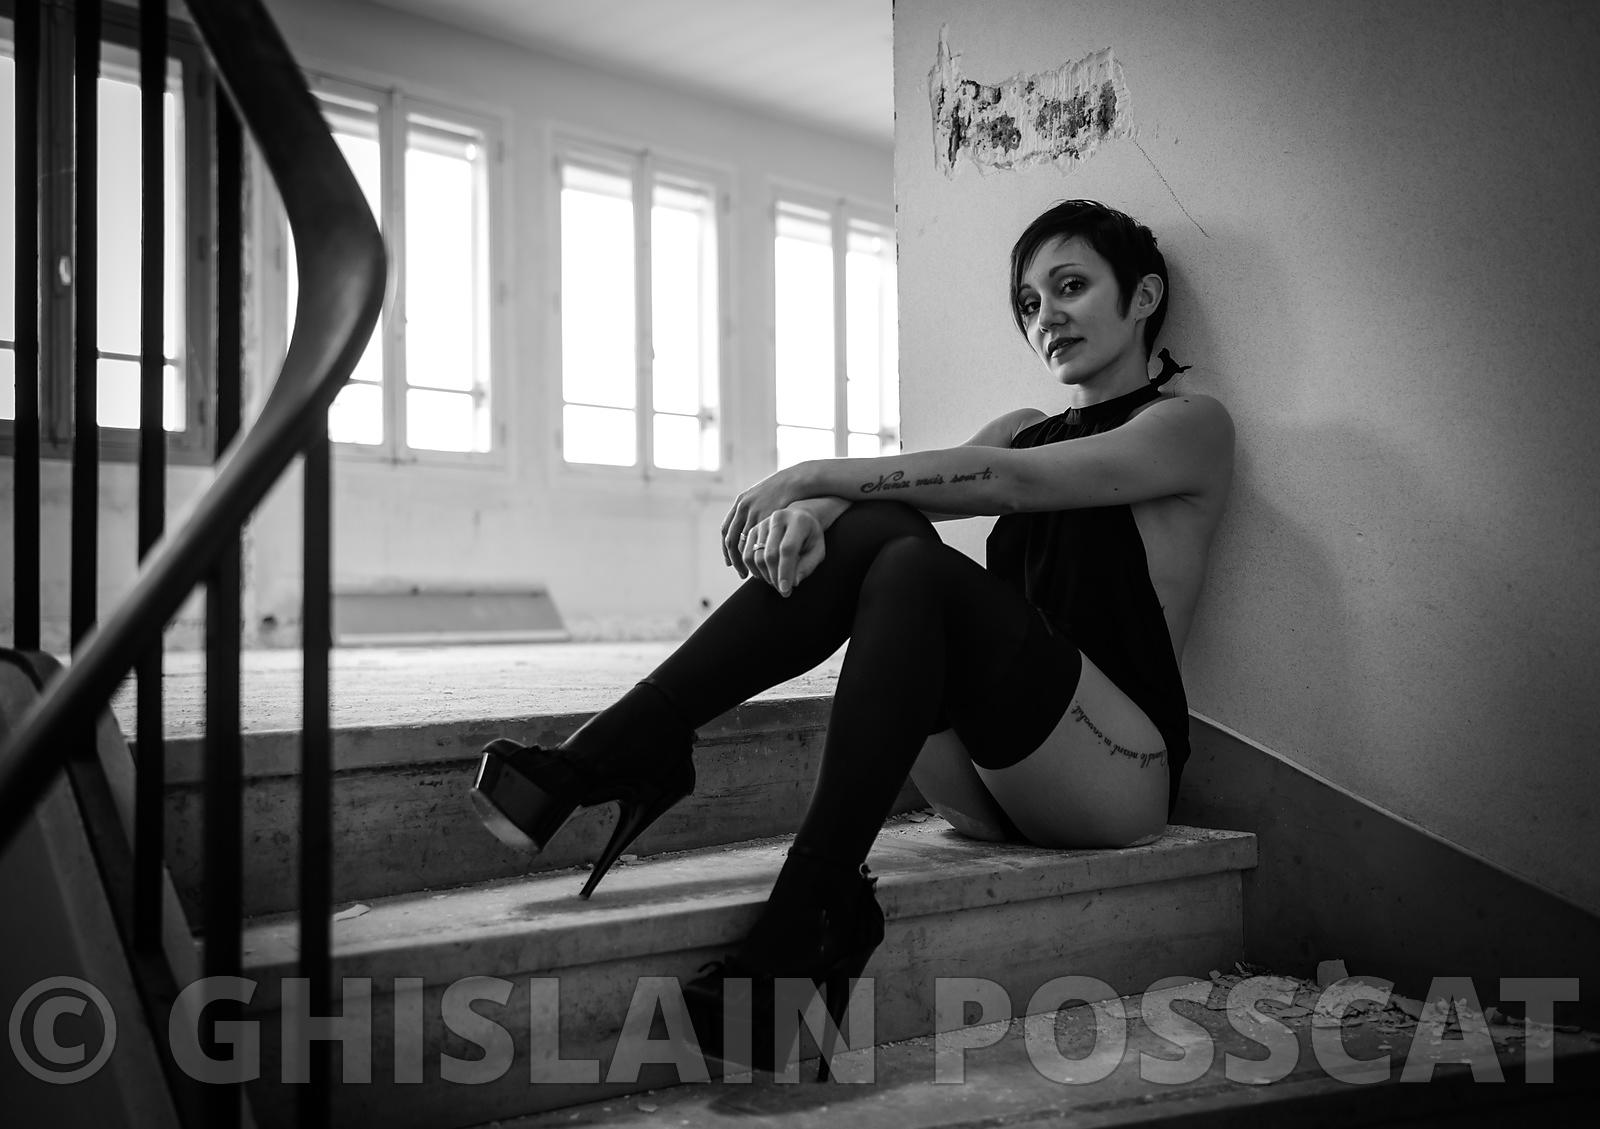 Sexy pictures - black and white glamour lady in stairs